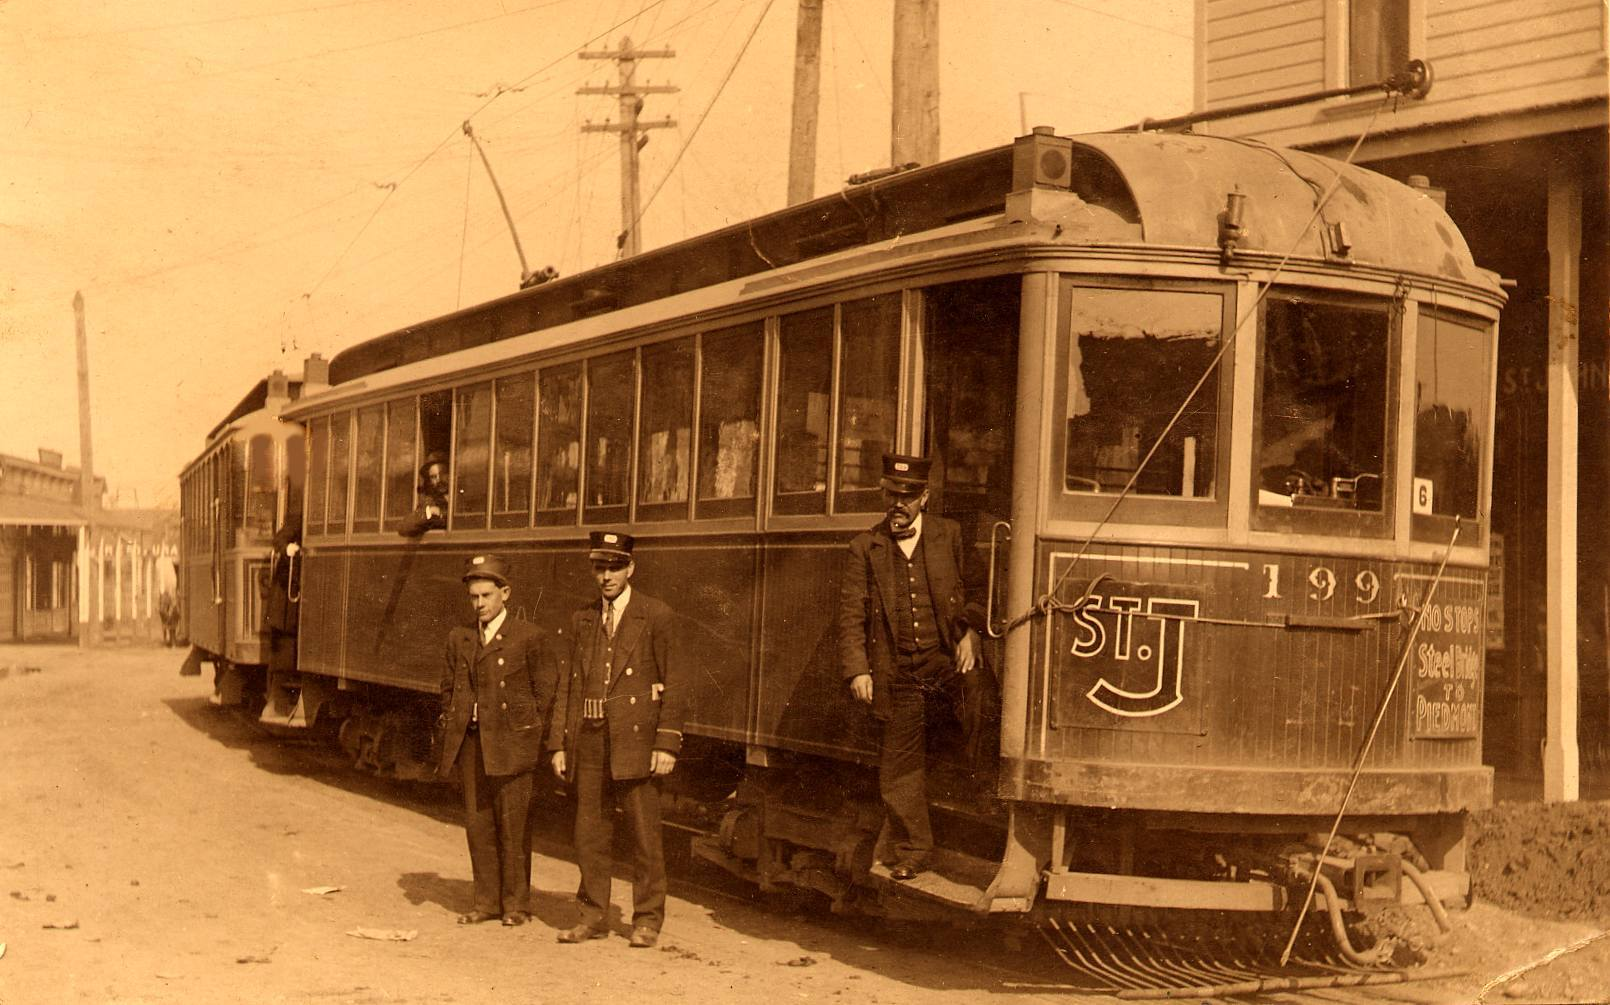 car 199 in front of St Johns Hardware